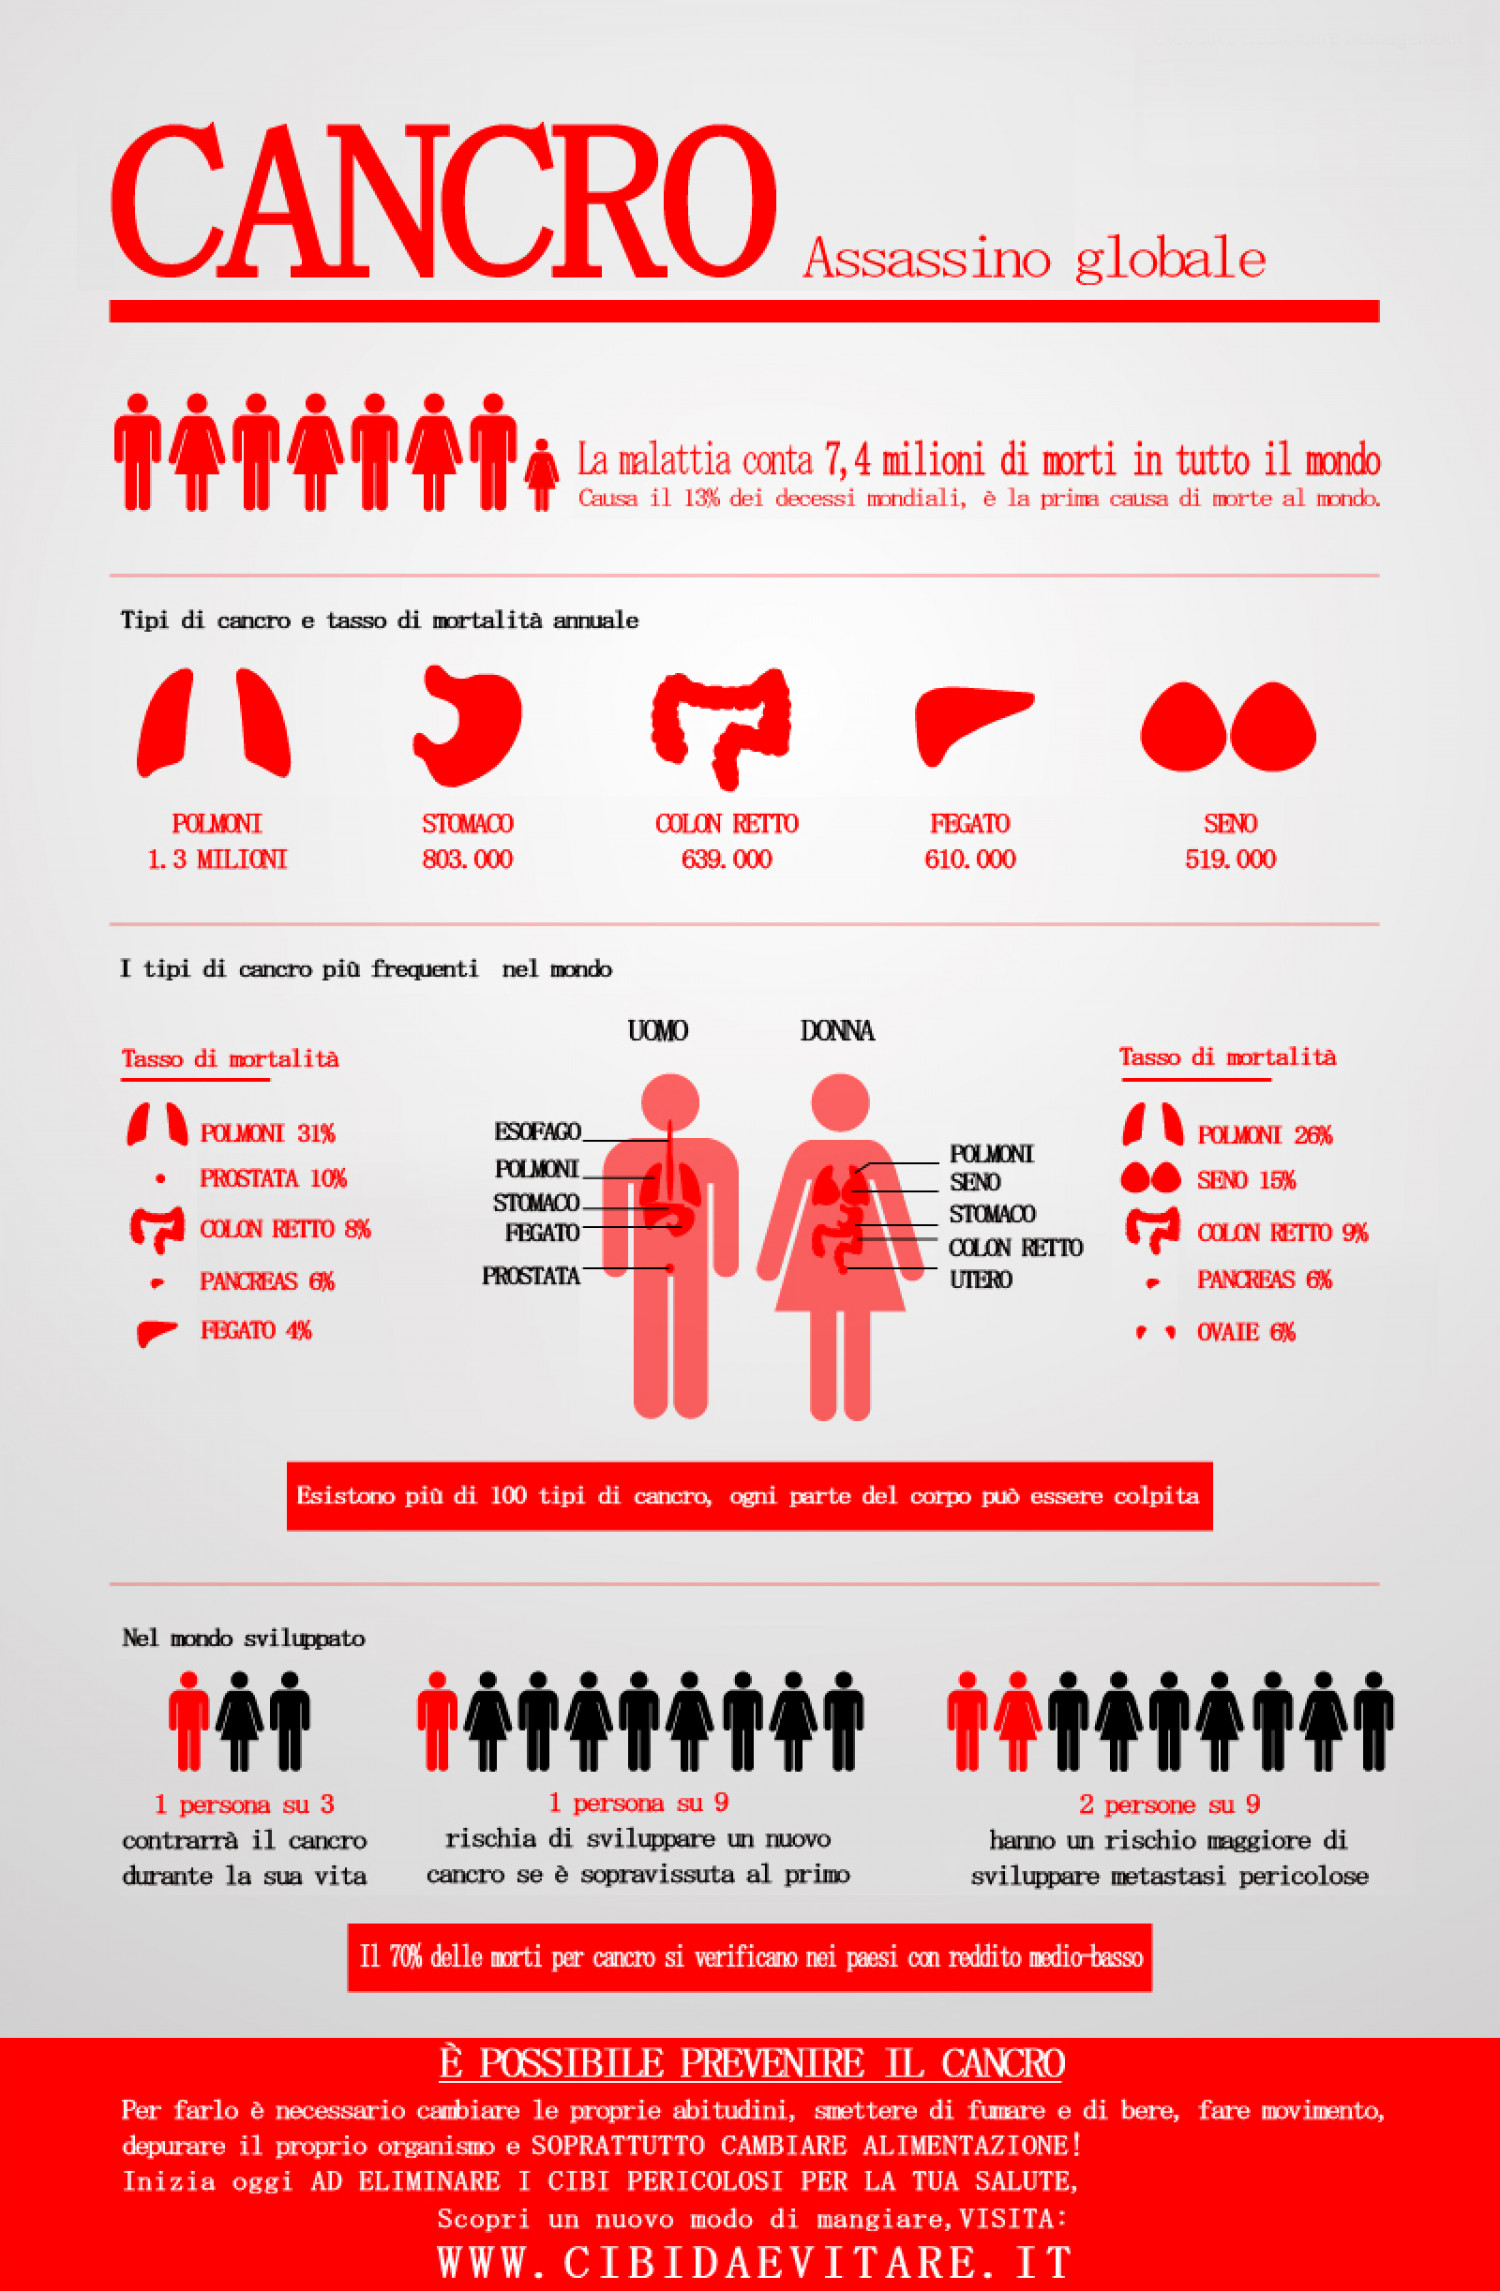 Cancro assassino globale Infographic